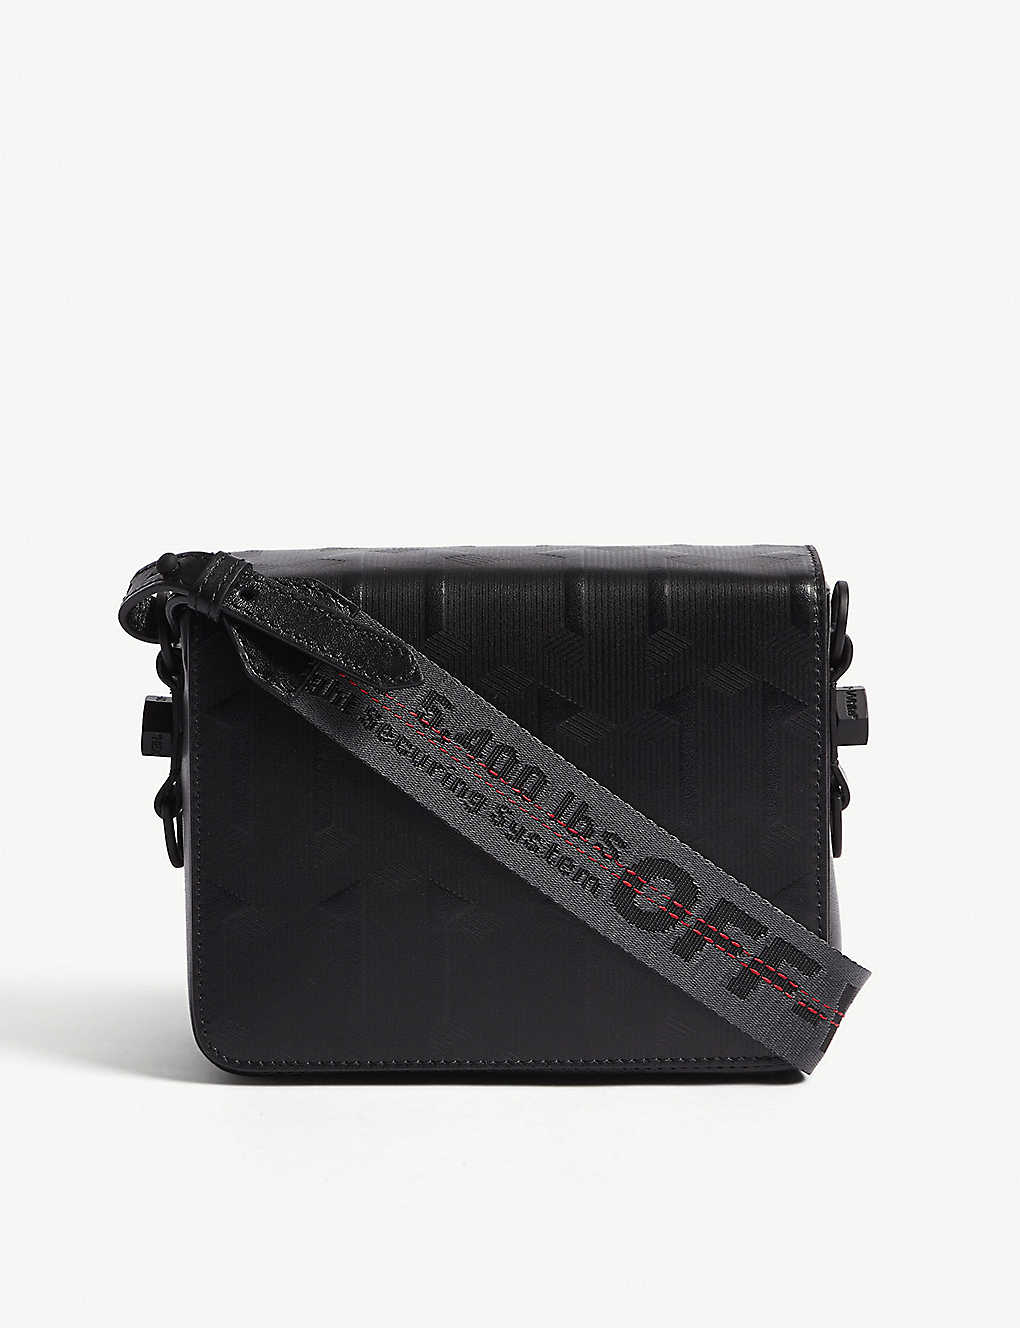 d81af8751a984 OFF-WHITE C/O VIRGIL ABLOH - Embossed arrow leather cross-body bag ...